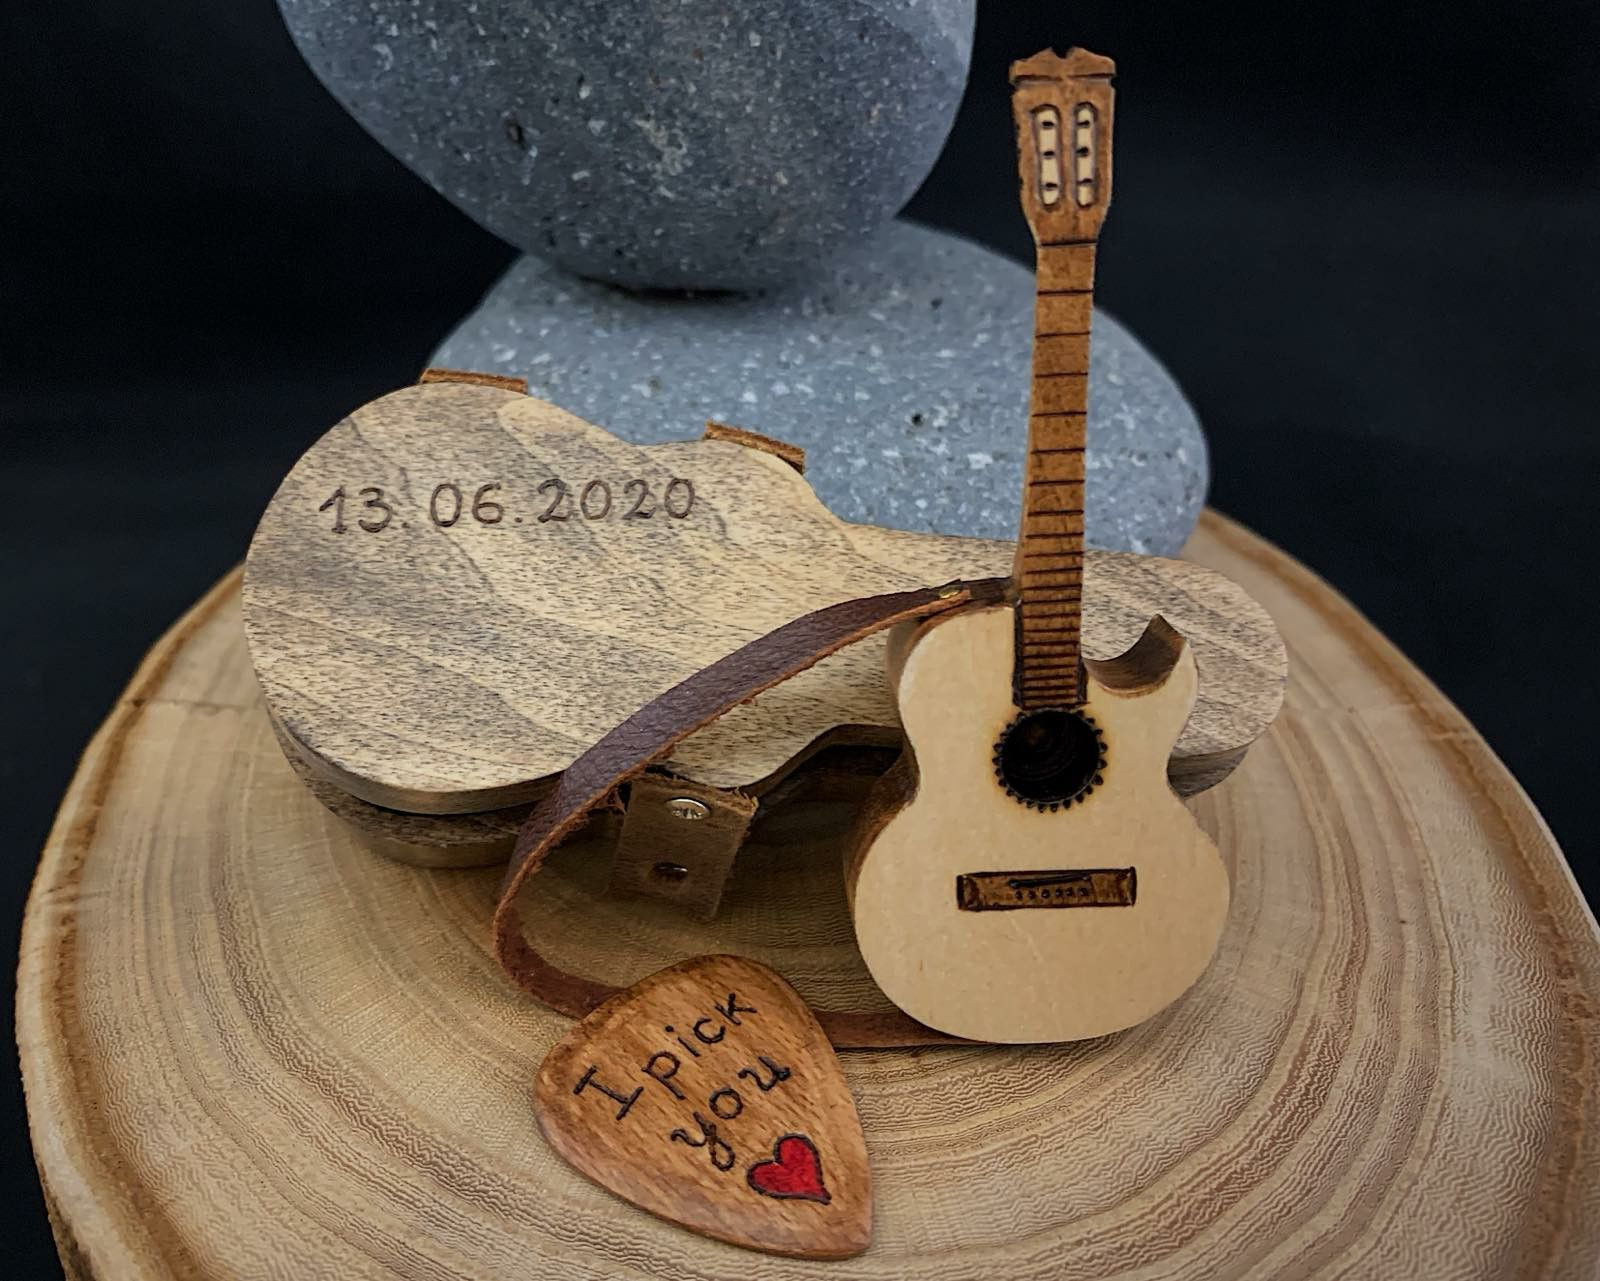 Acoustic Guitar Christmas Gift Idea For Musicians Guitar Gifts For Men Gift For Music Lovers Miniature Music Instruments Music Decor Gift For Music Lover Guitar Lover Gifts Guitar Gifts